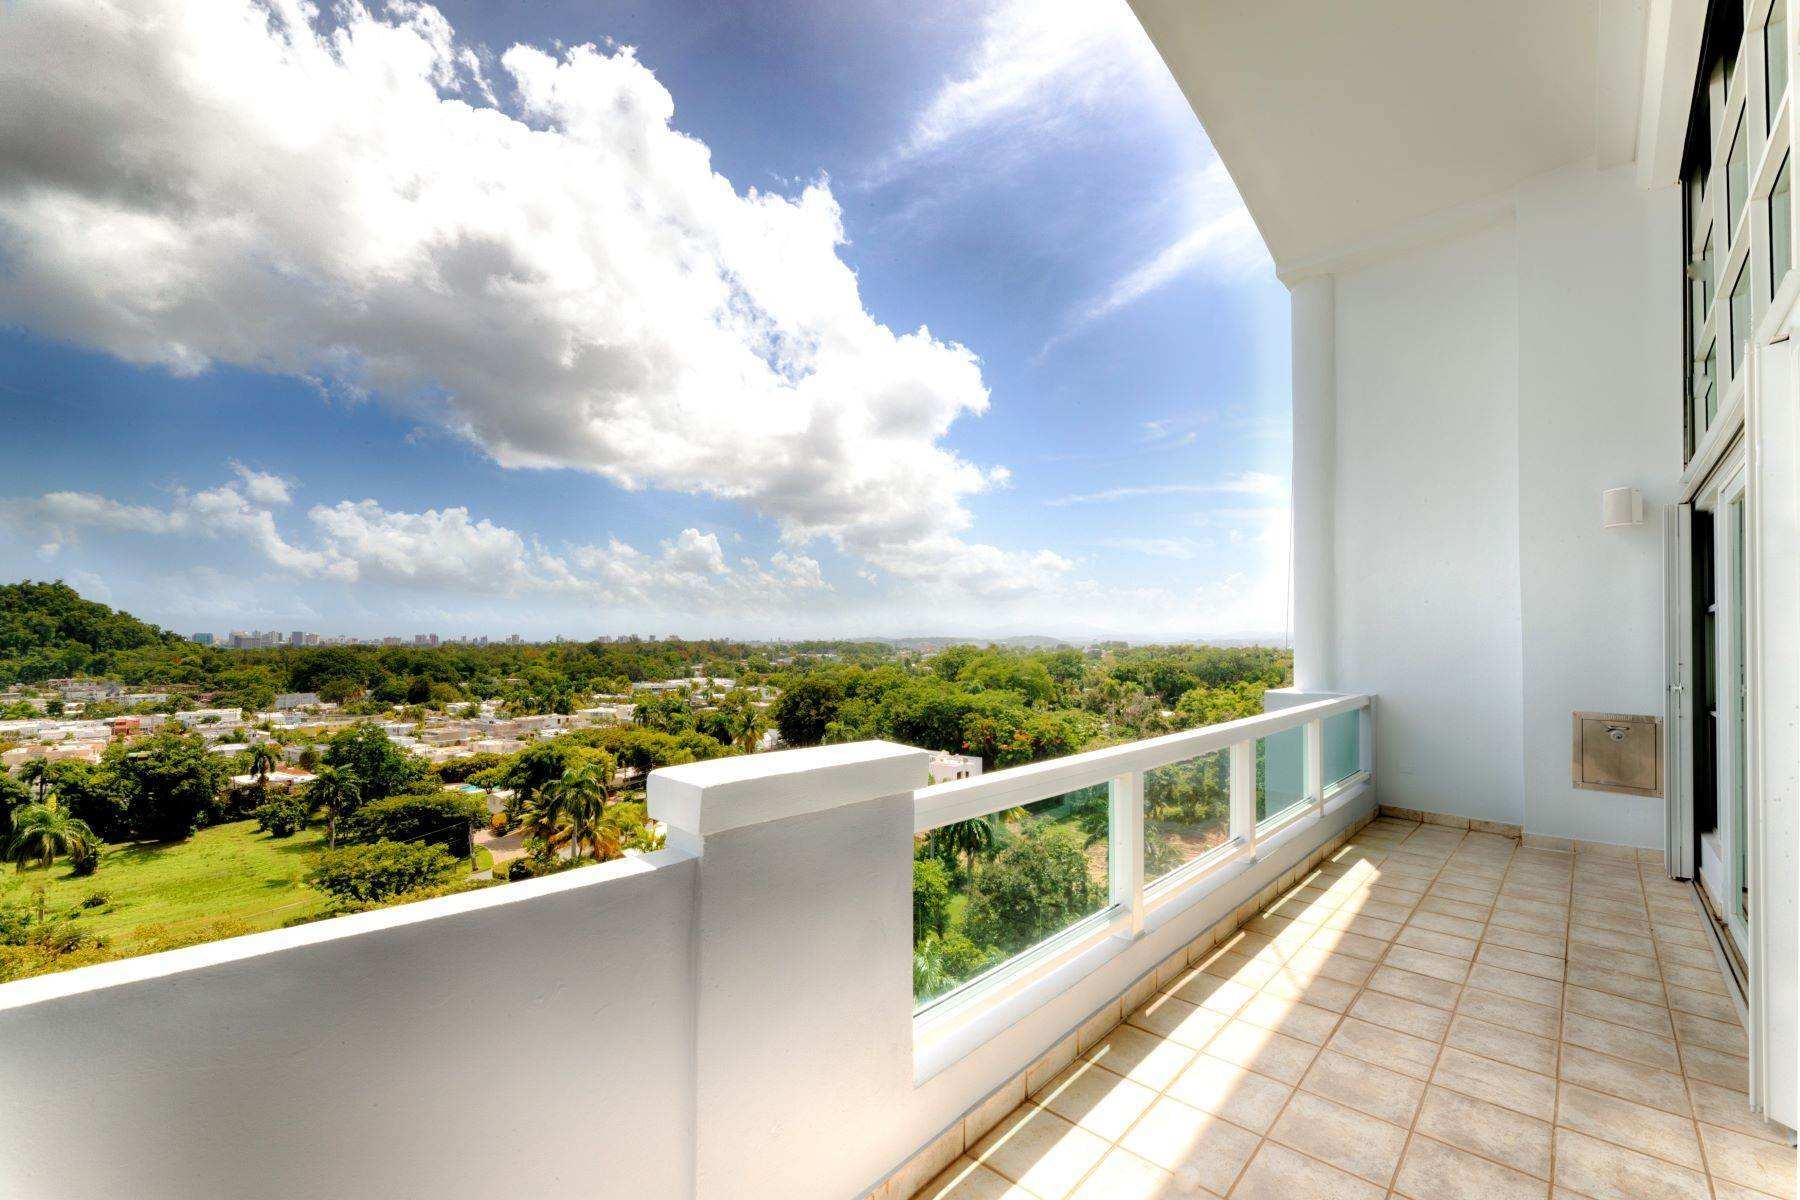 4. Condominiums for Sale at Stunning Duplex PH with Scenic Views in Portofino 5 Palm Circle St., Apt. 16 PH-A Guaynabo, 00969 Puerto Rico